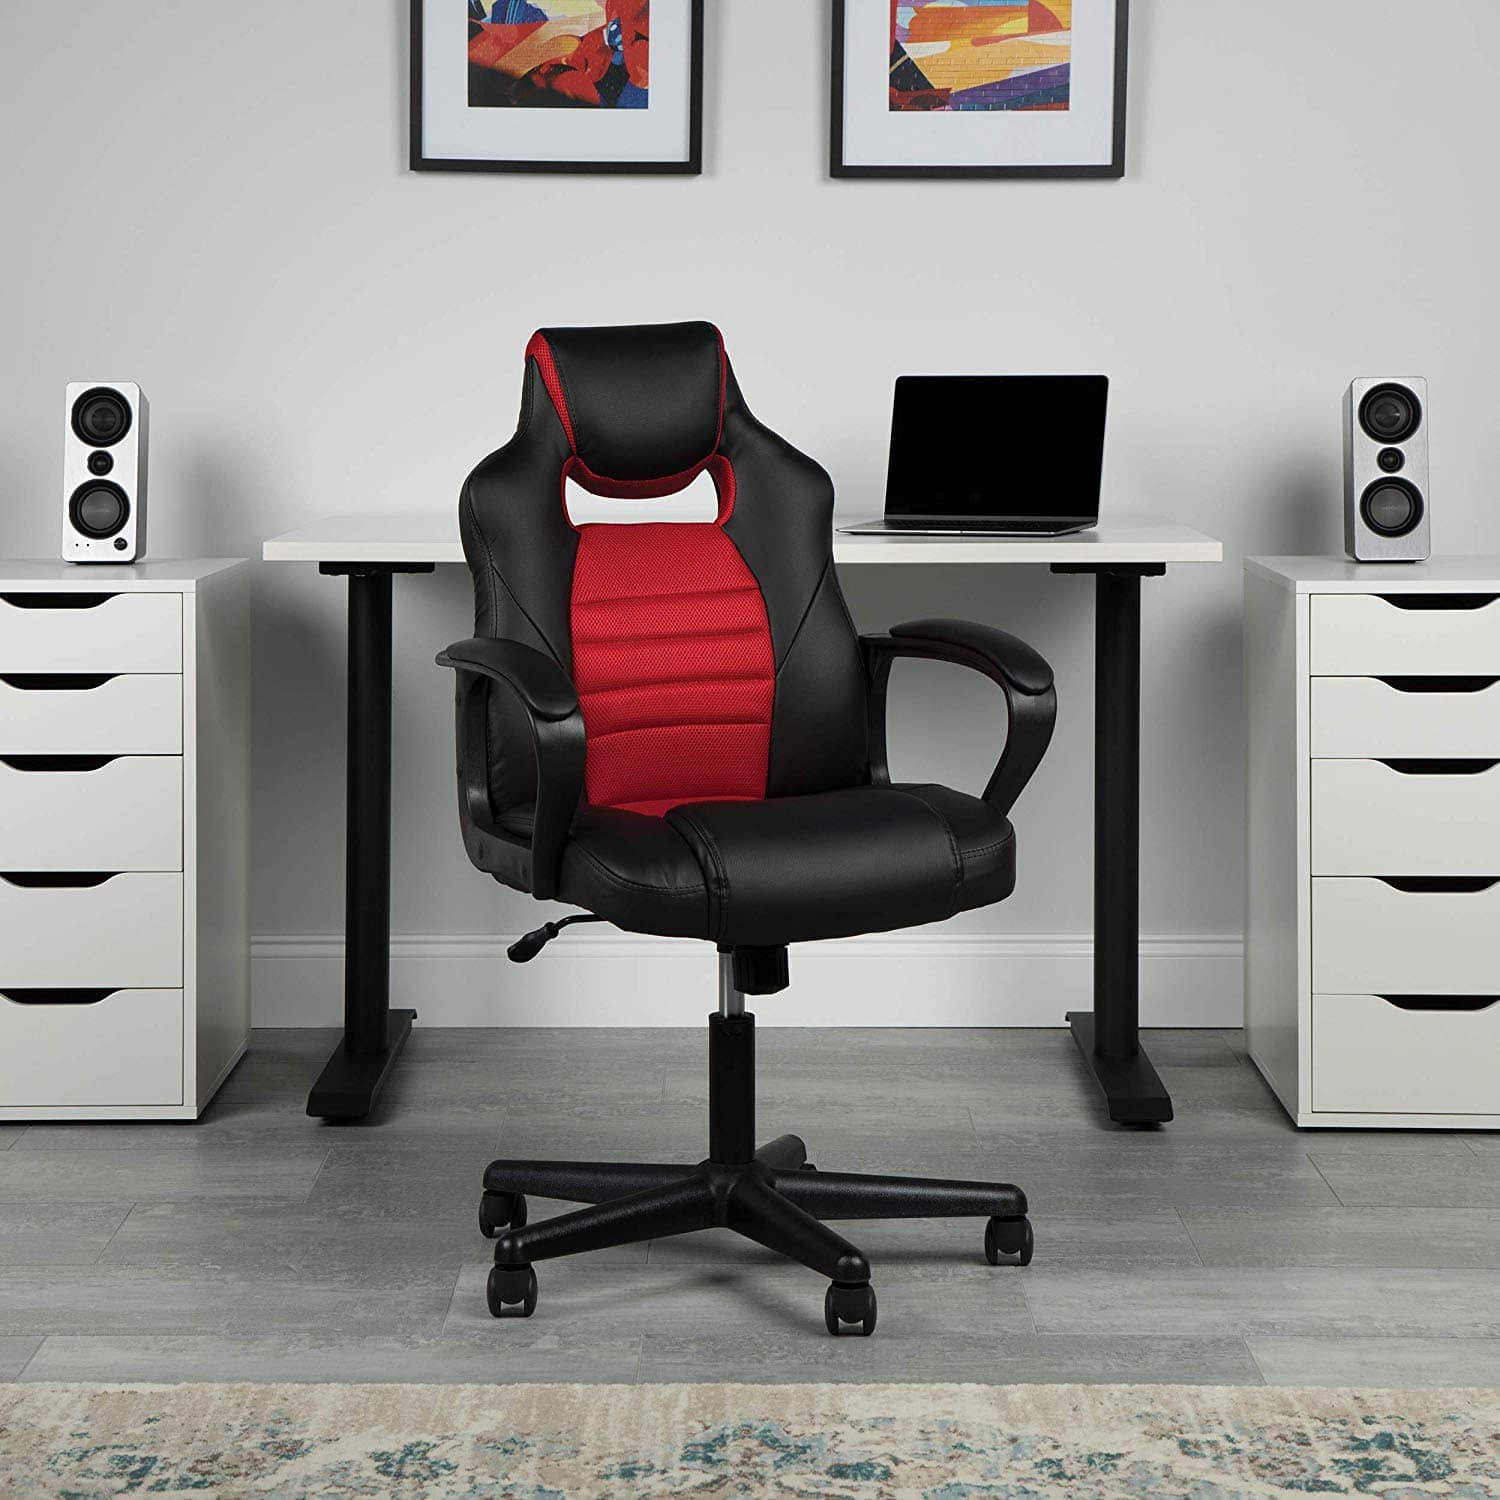 Essentials Gaming Chair - Racing Style Ergonomic Mesh and Leather Computer Chair, Red (ESS-3083-RED) $53.99 + FS